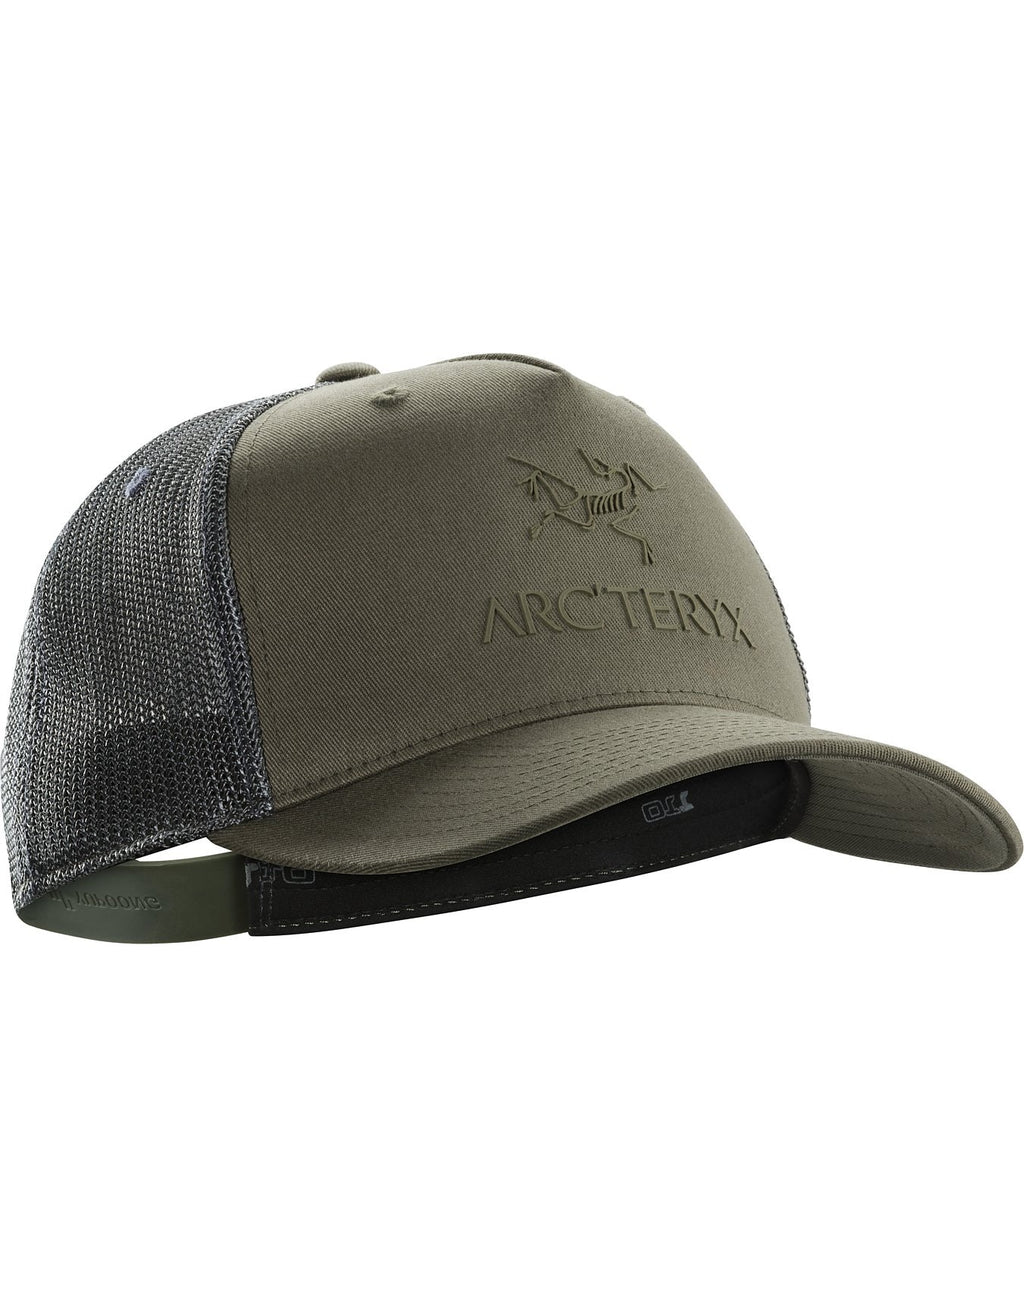 Arc'Teryx Logo Trucker Hat / Joshua Tree - Trailside Outfitter